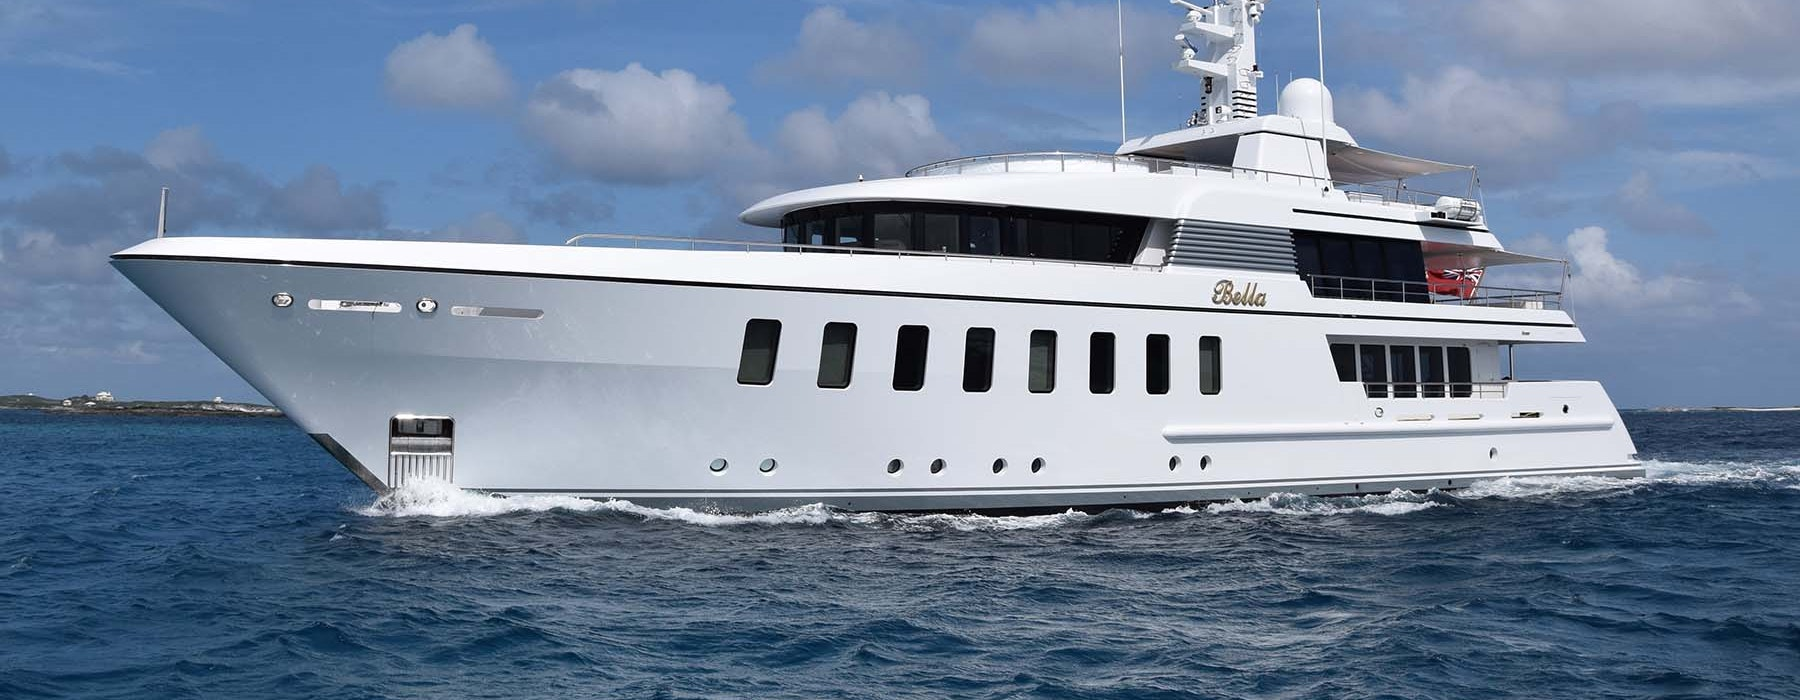 Luxury motoryacht for sale BELLA 45m Feadship